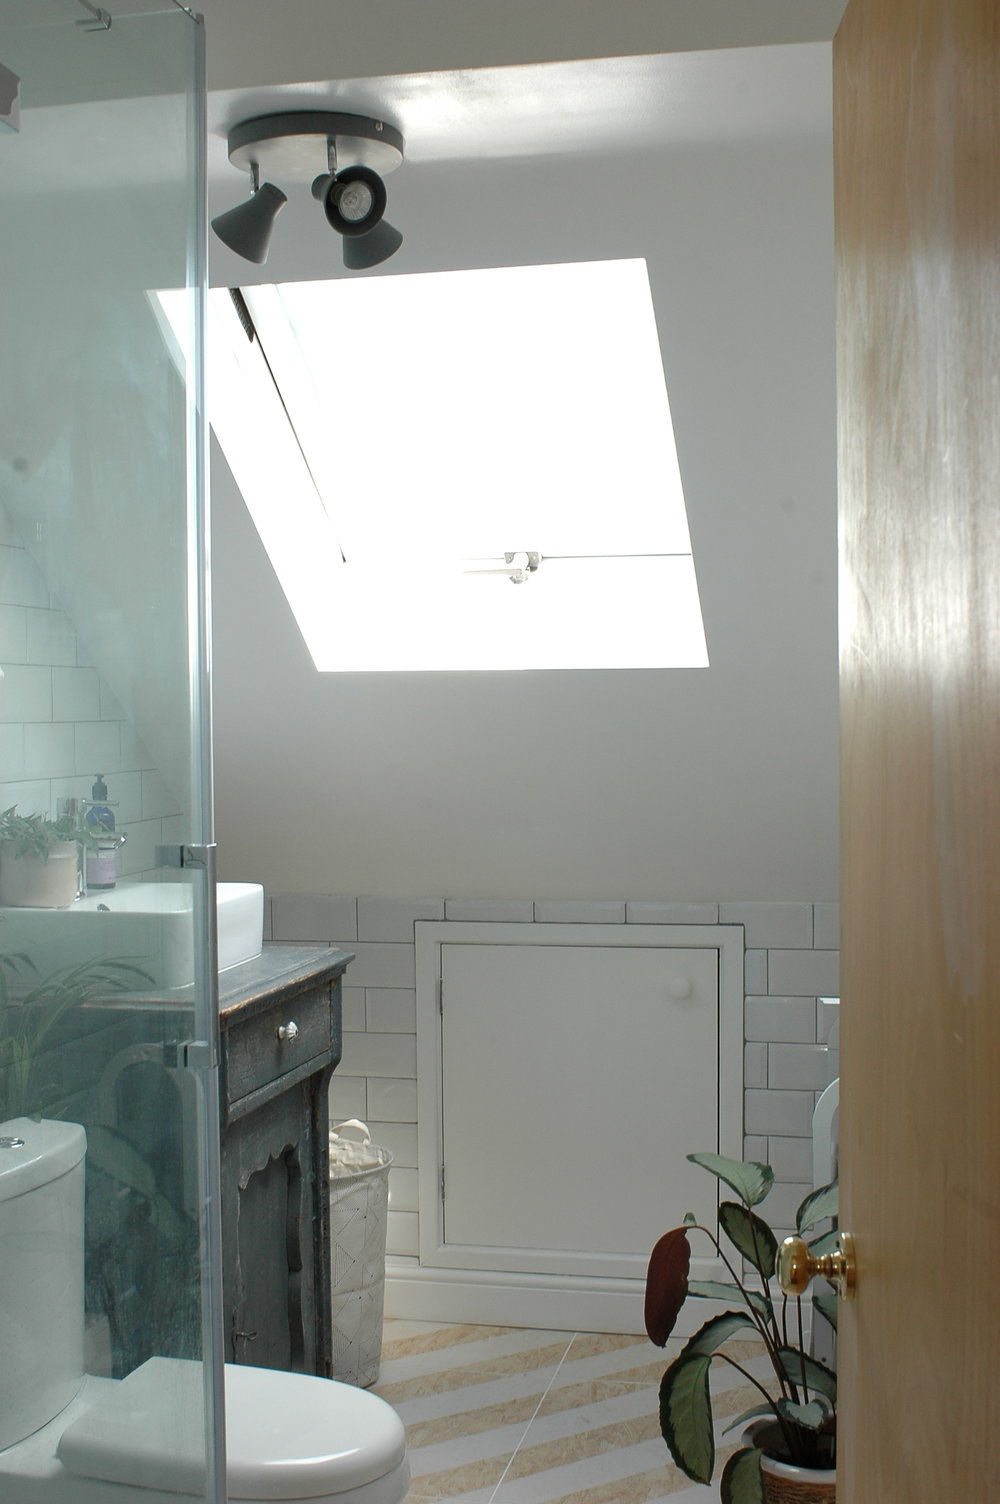 An en-suite bathroom in the loft conversion